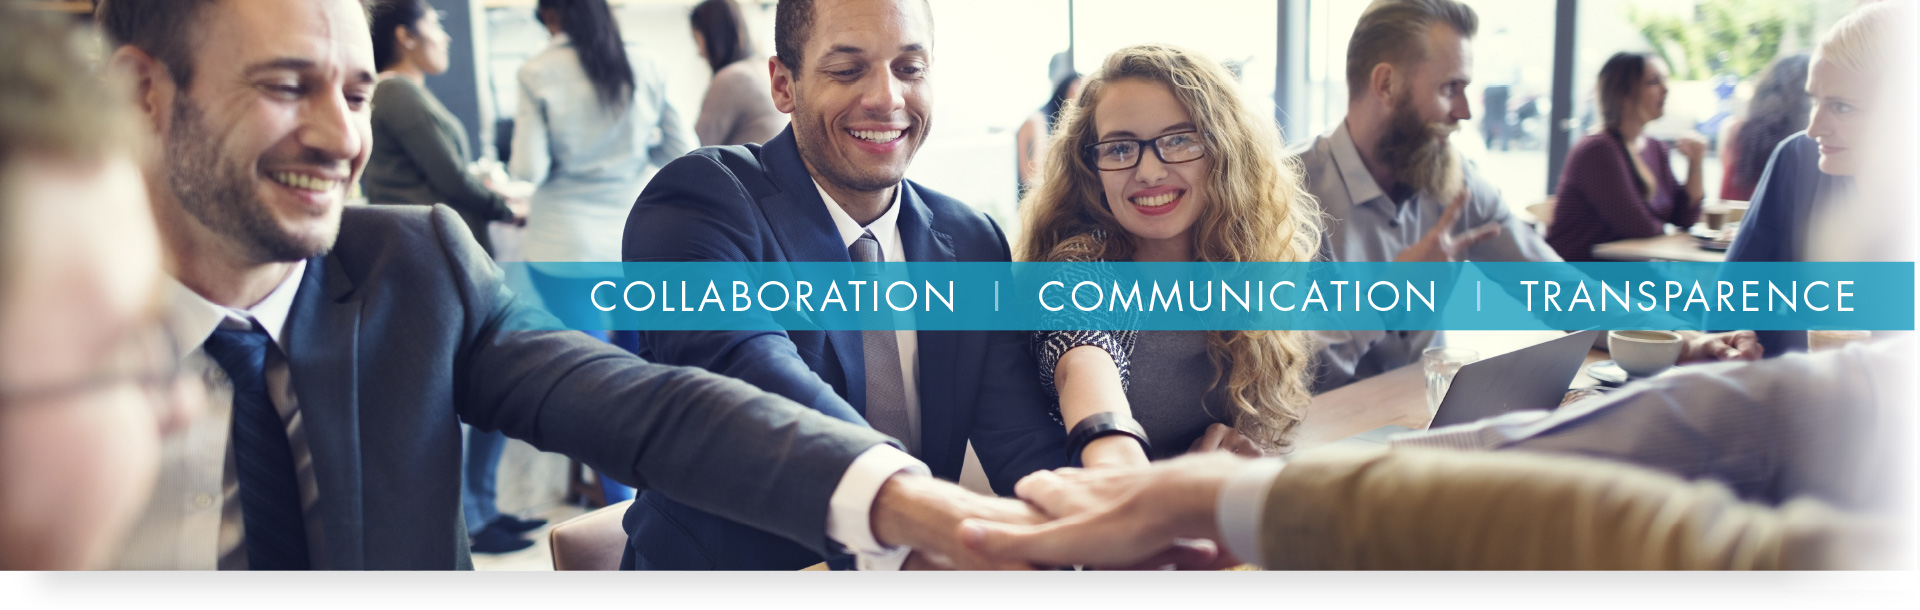 Collaboration et communication | Ghislaine Bousquet coach éclaireur de leaders